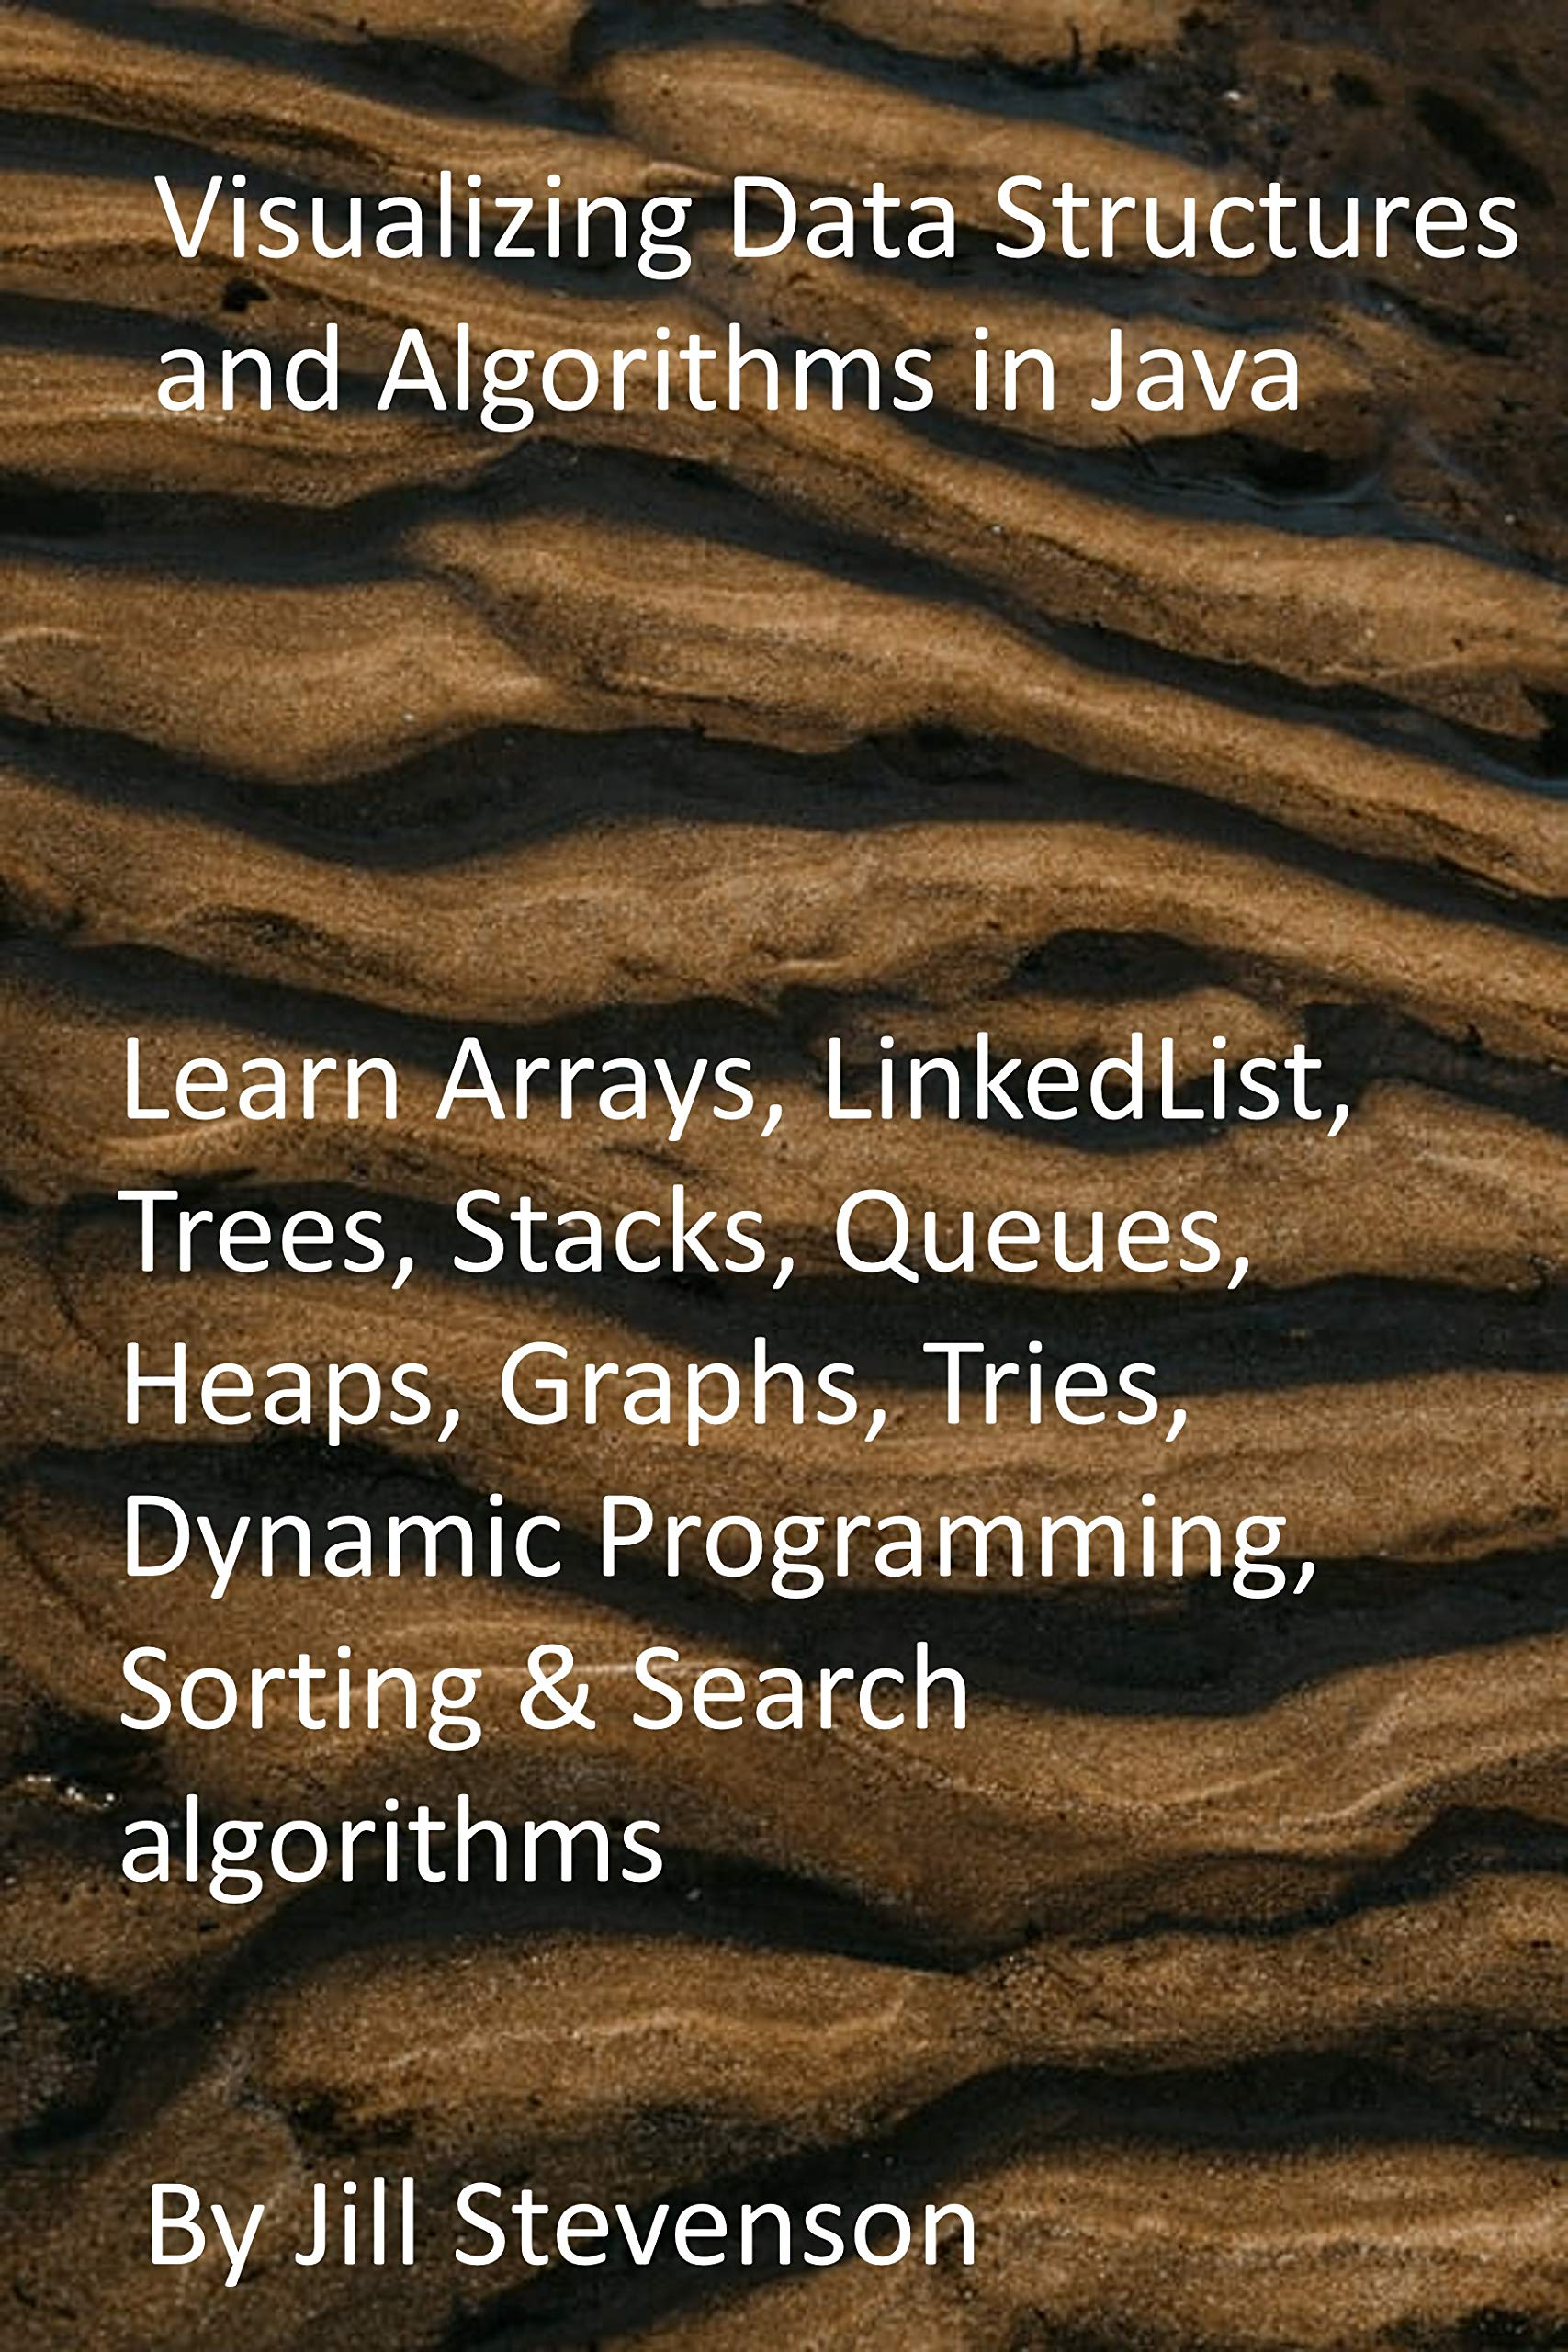 Visualizing Data Structures and Algorithms in Java: Learn Arrays, LinkedList, Trees, Stacks, Queues, Heaps, Graphs, Tries, Dynamic Programming, Sorting & Search algorithms